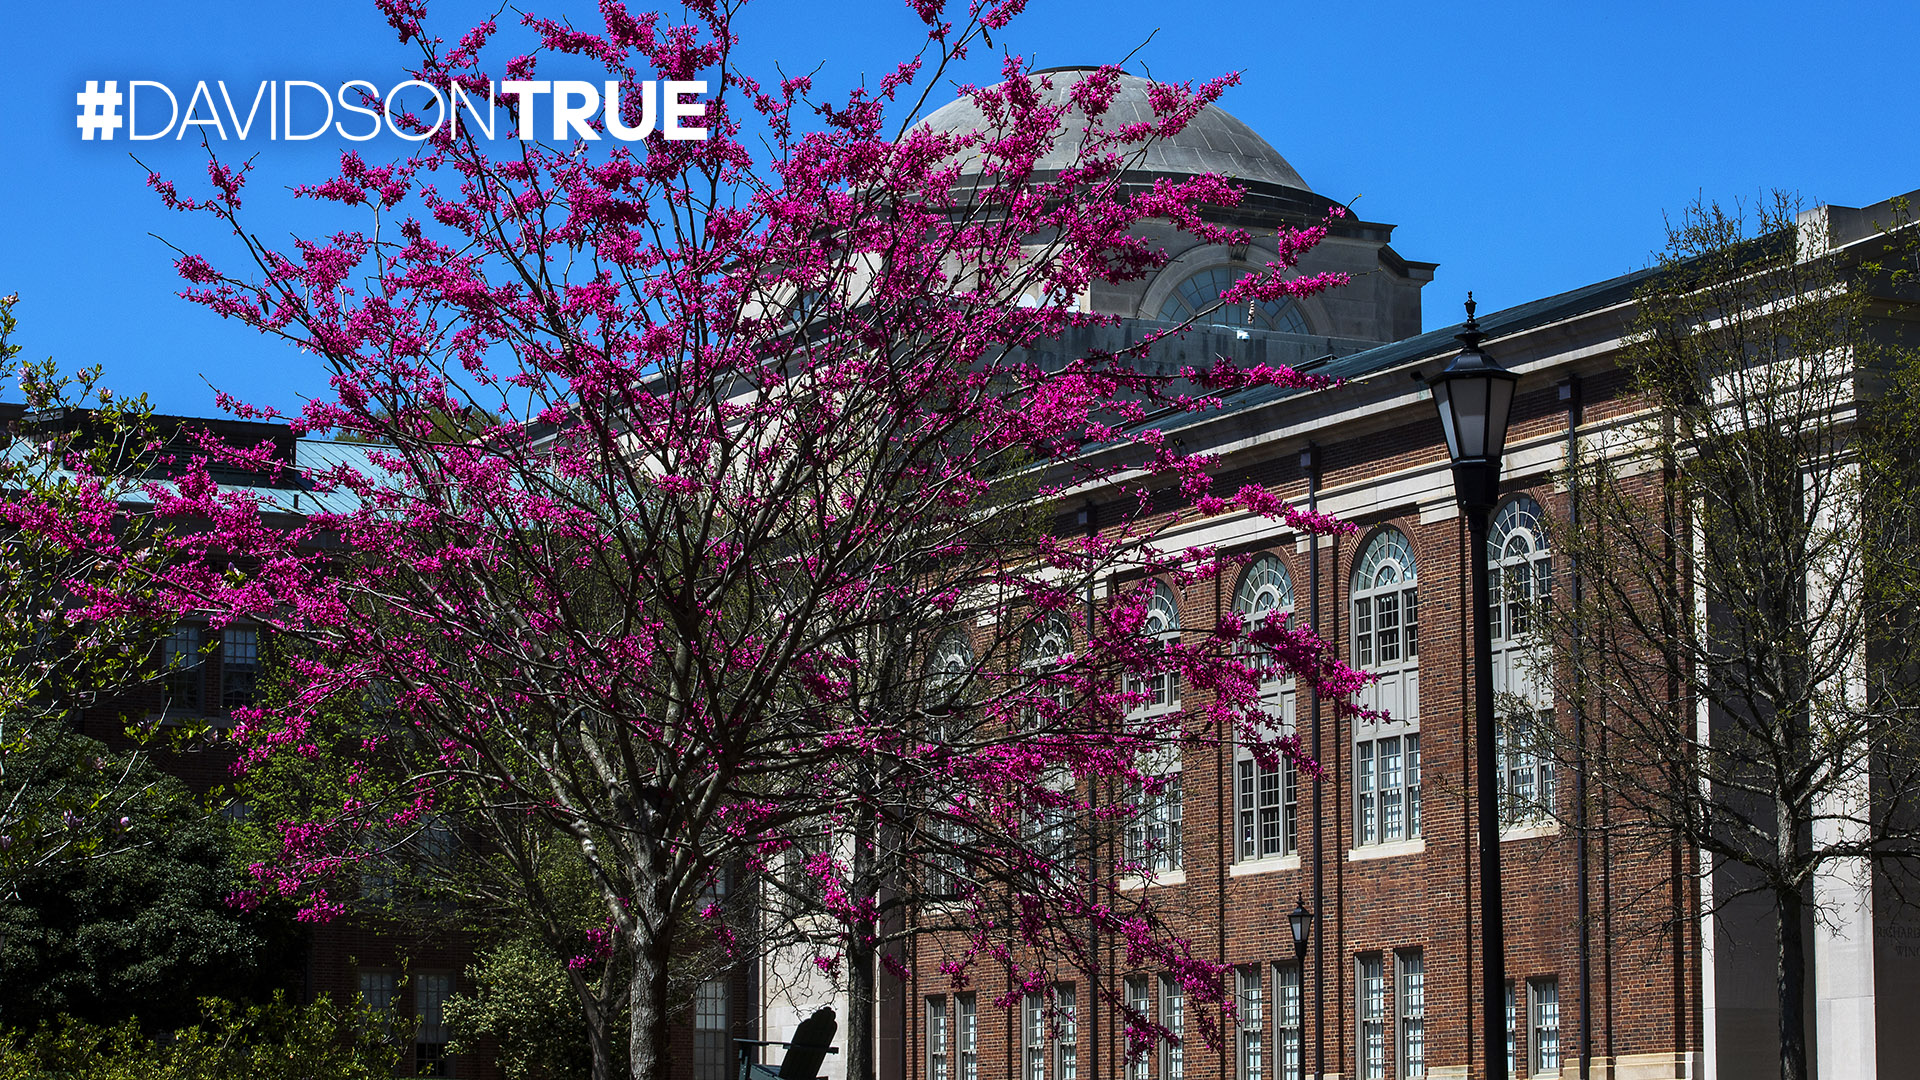 Back of Chambers and Flowering Tree with #DAVIDSONTRUE